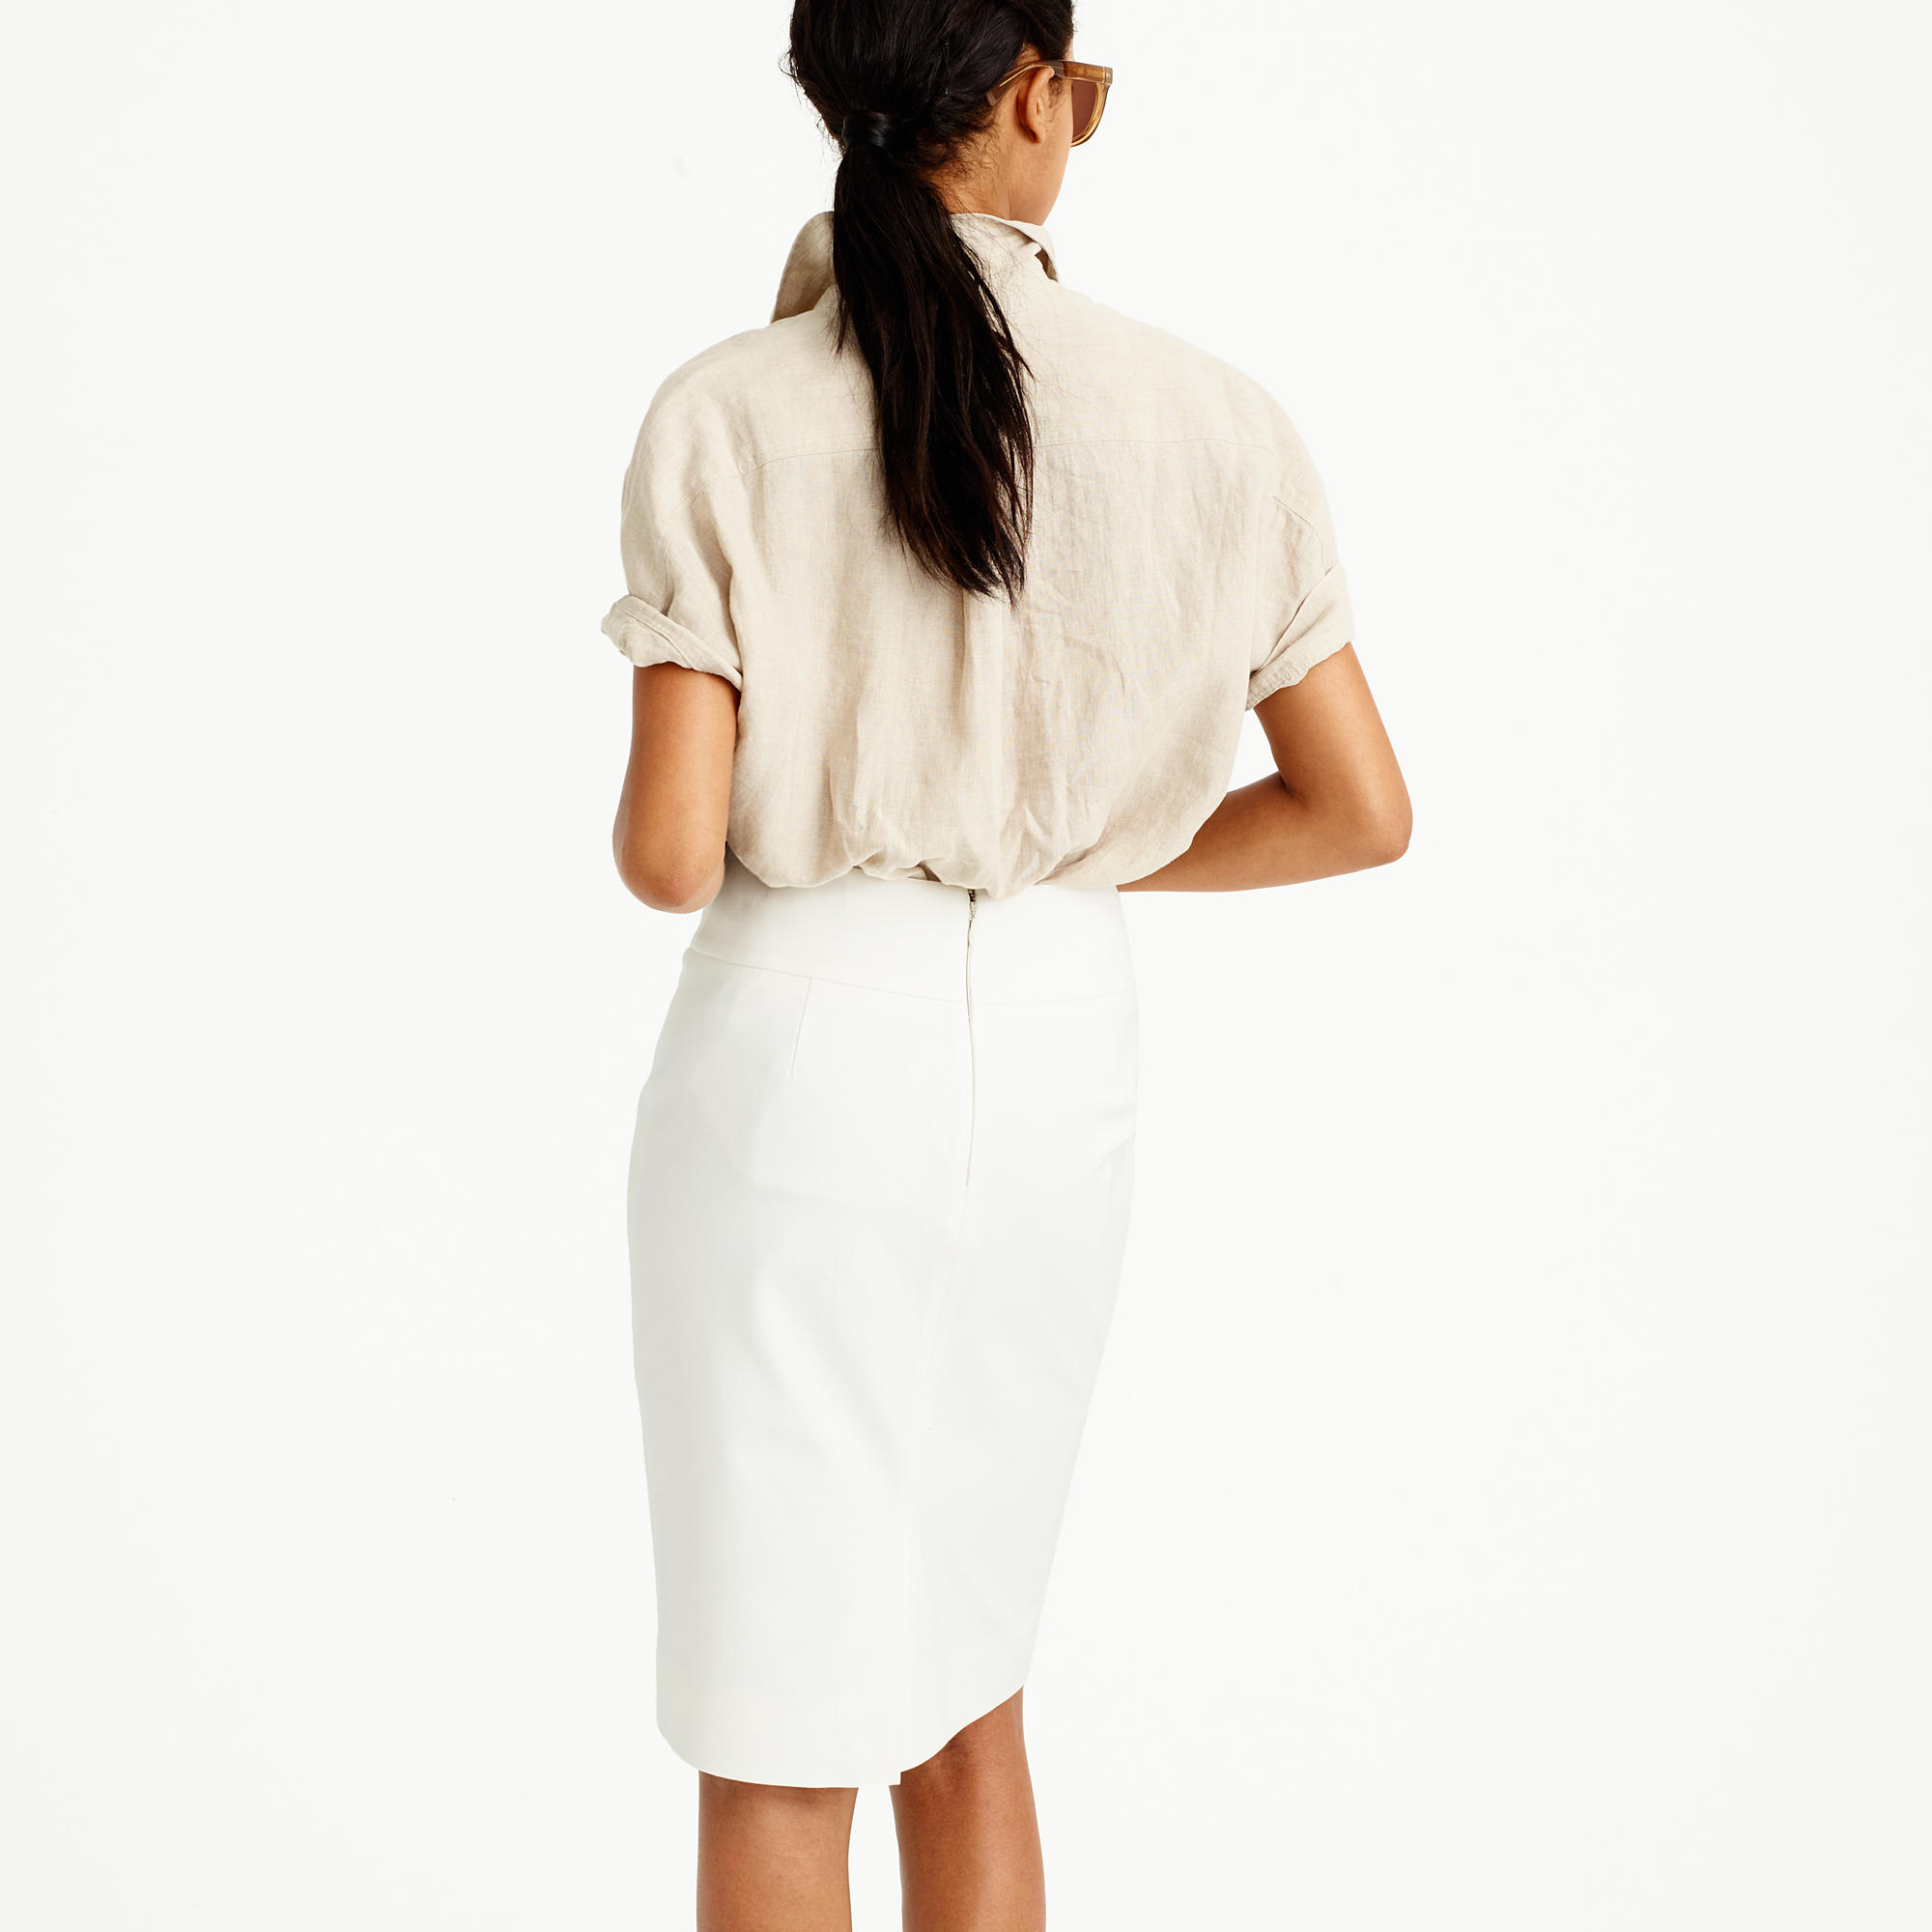 No. 2 Pencil Skirt In Bi-Stretch Cotton : Women's Skirts | J.Crew